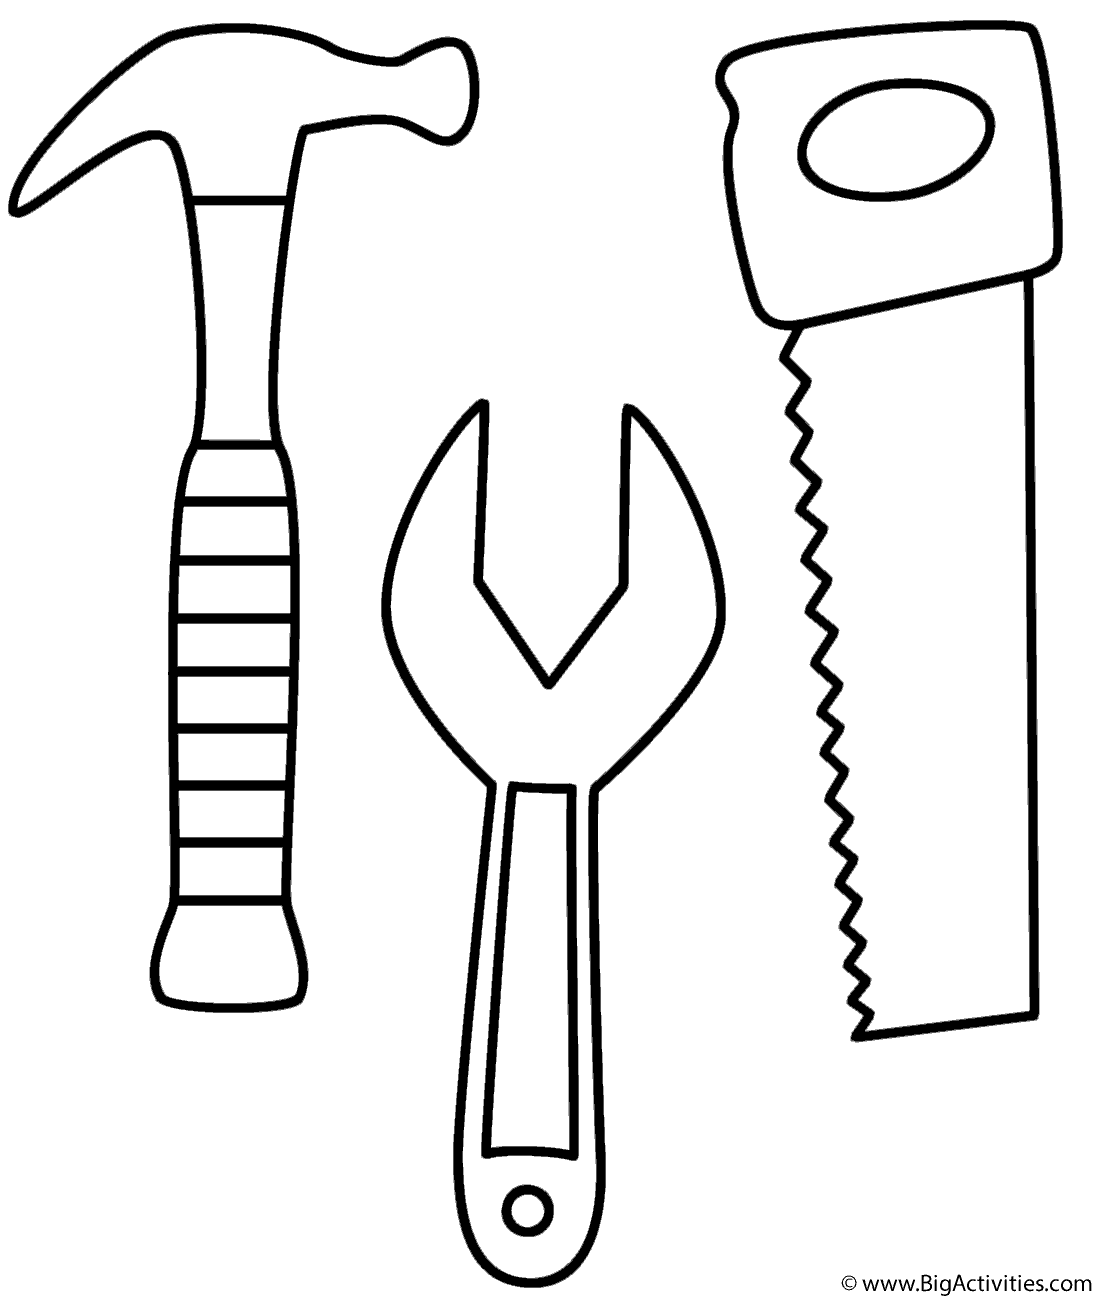 Hammer Saw And Wrench